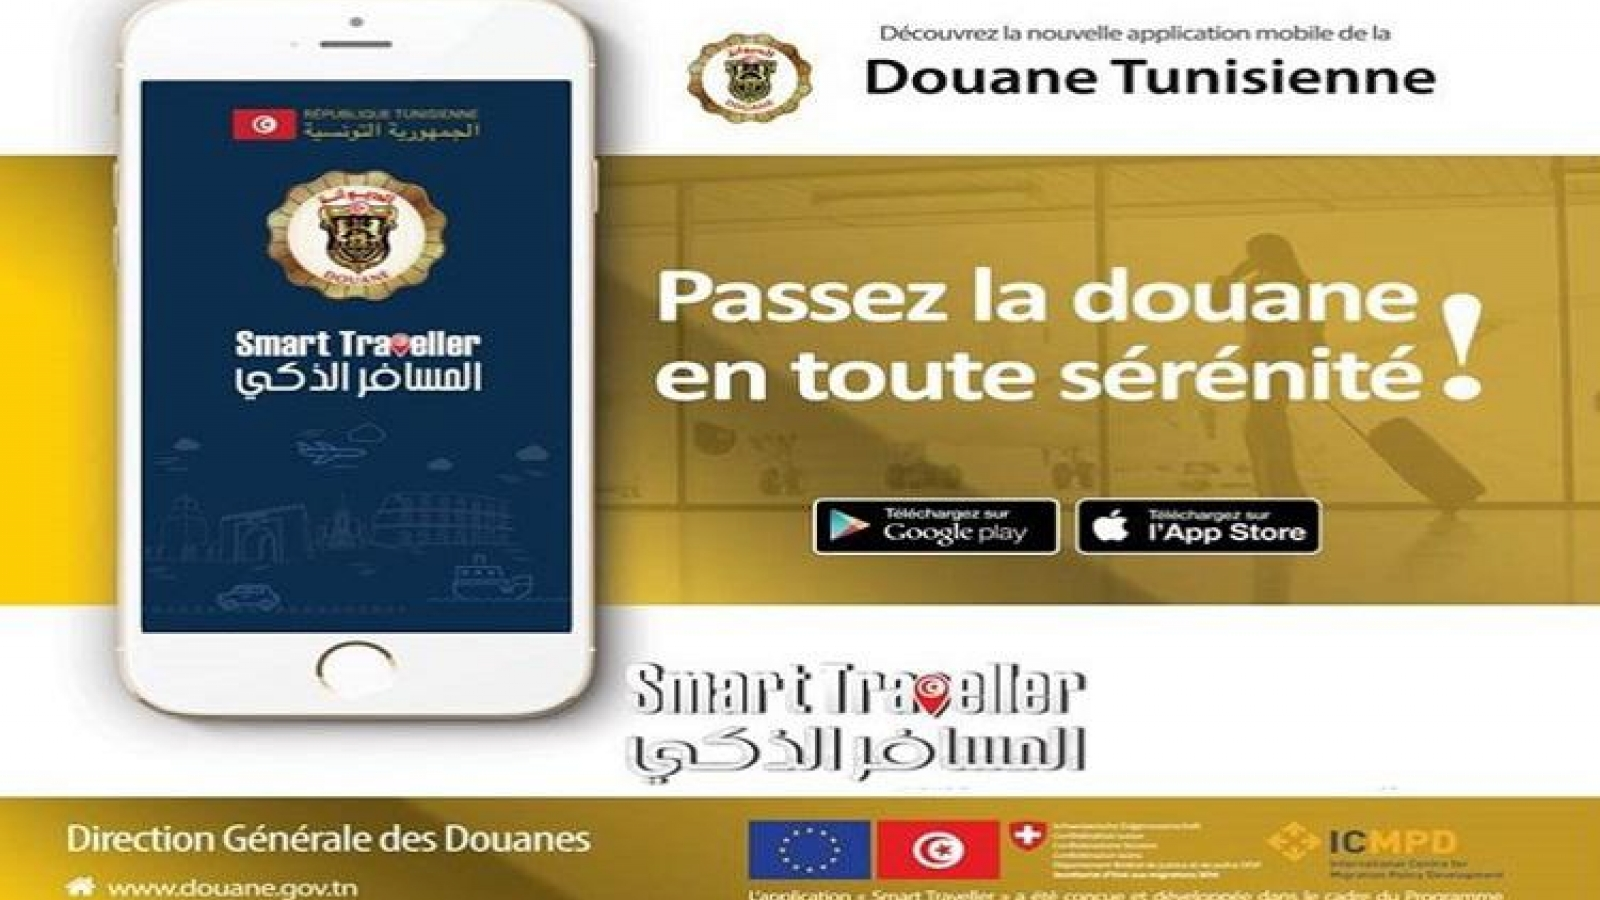 EU funds development of « Smart Traveller » mobile customs application to enhance travel experience in Tunisia